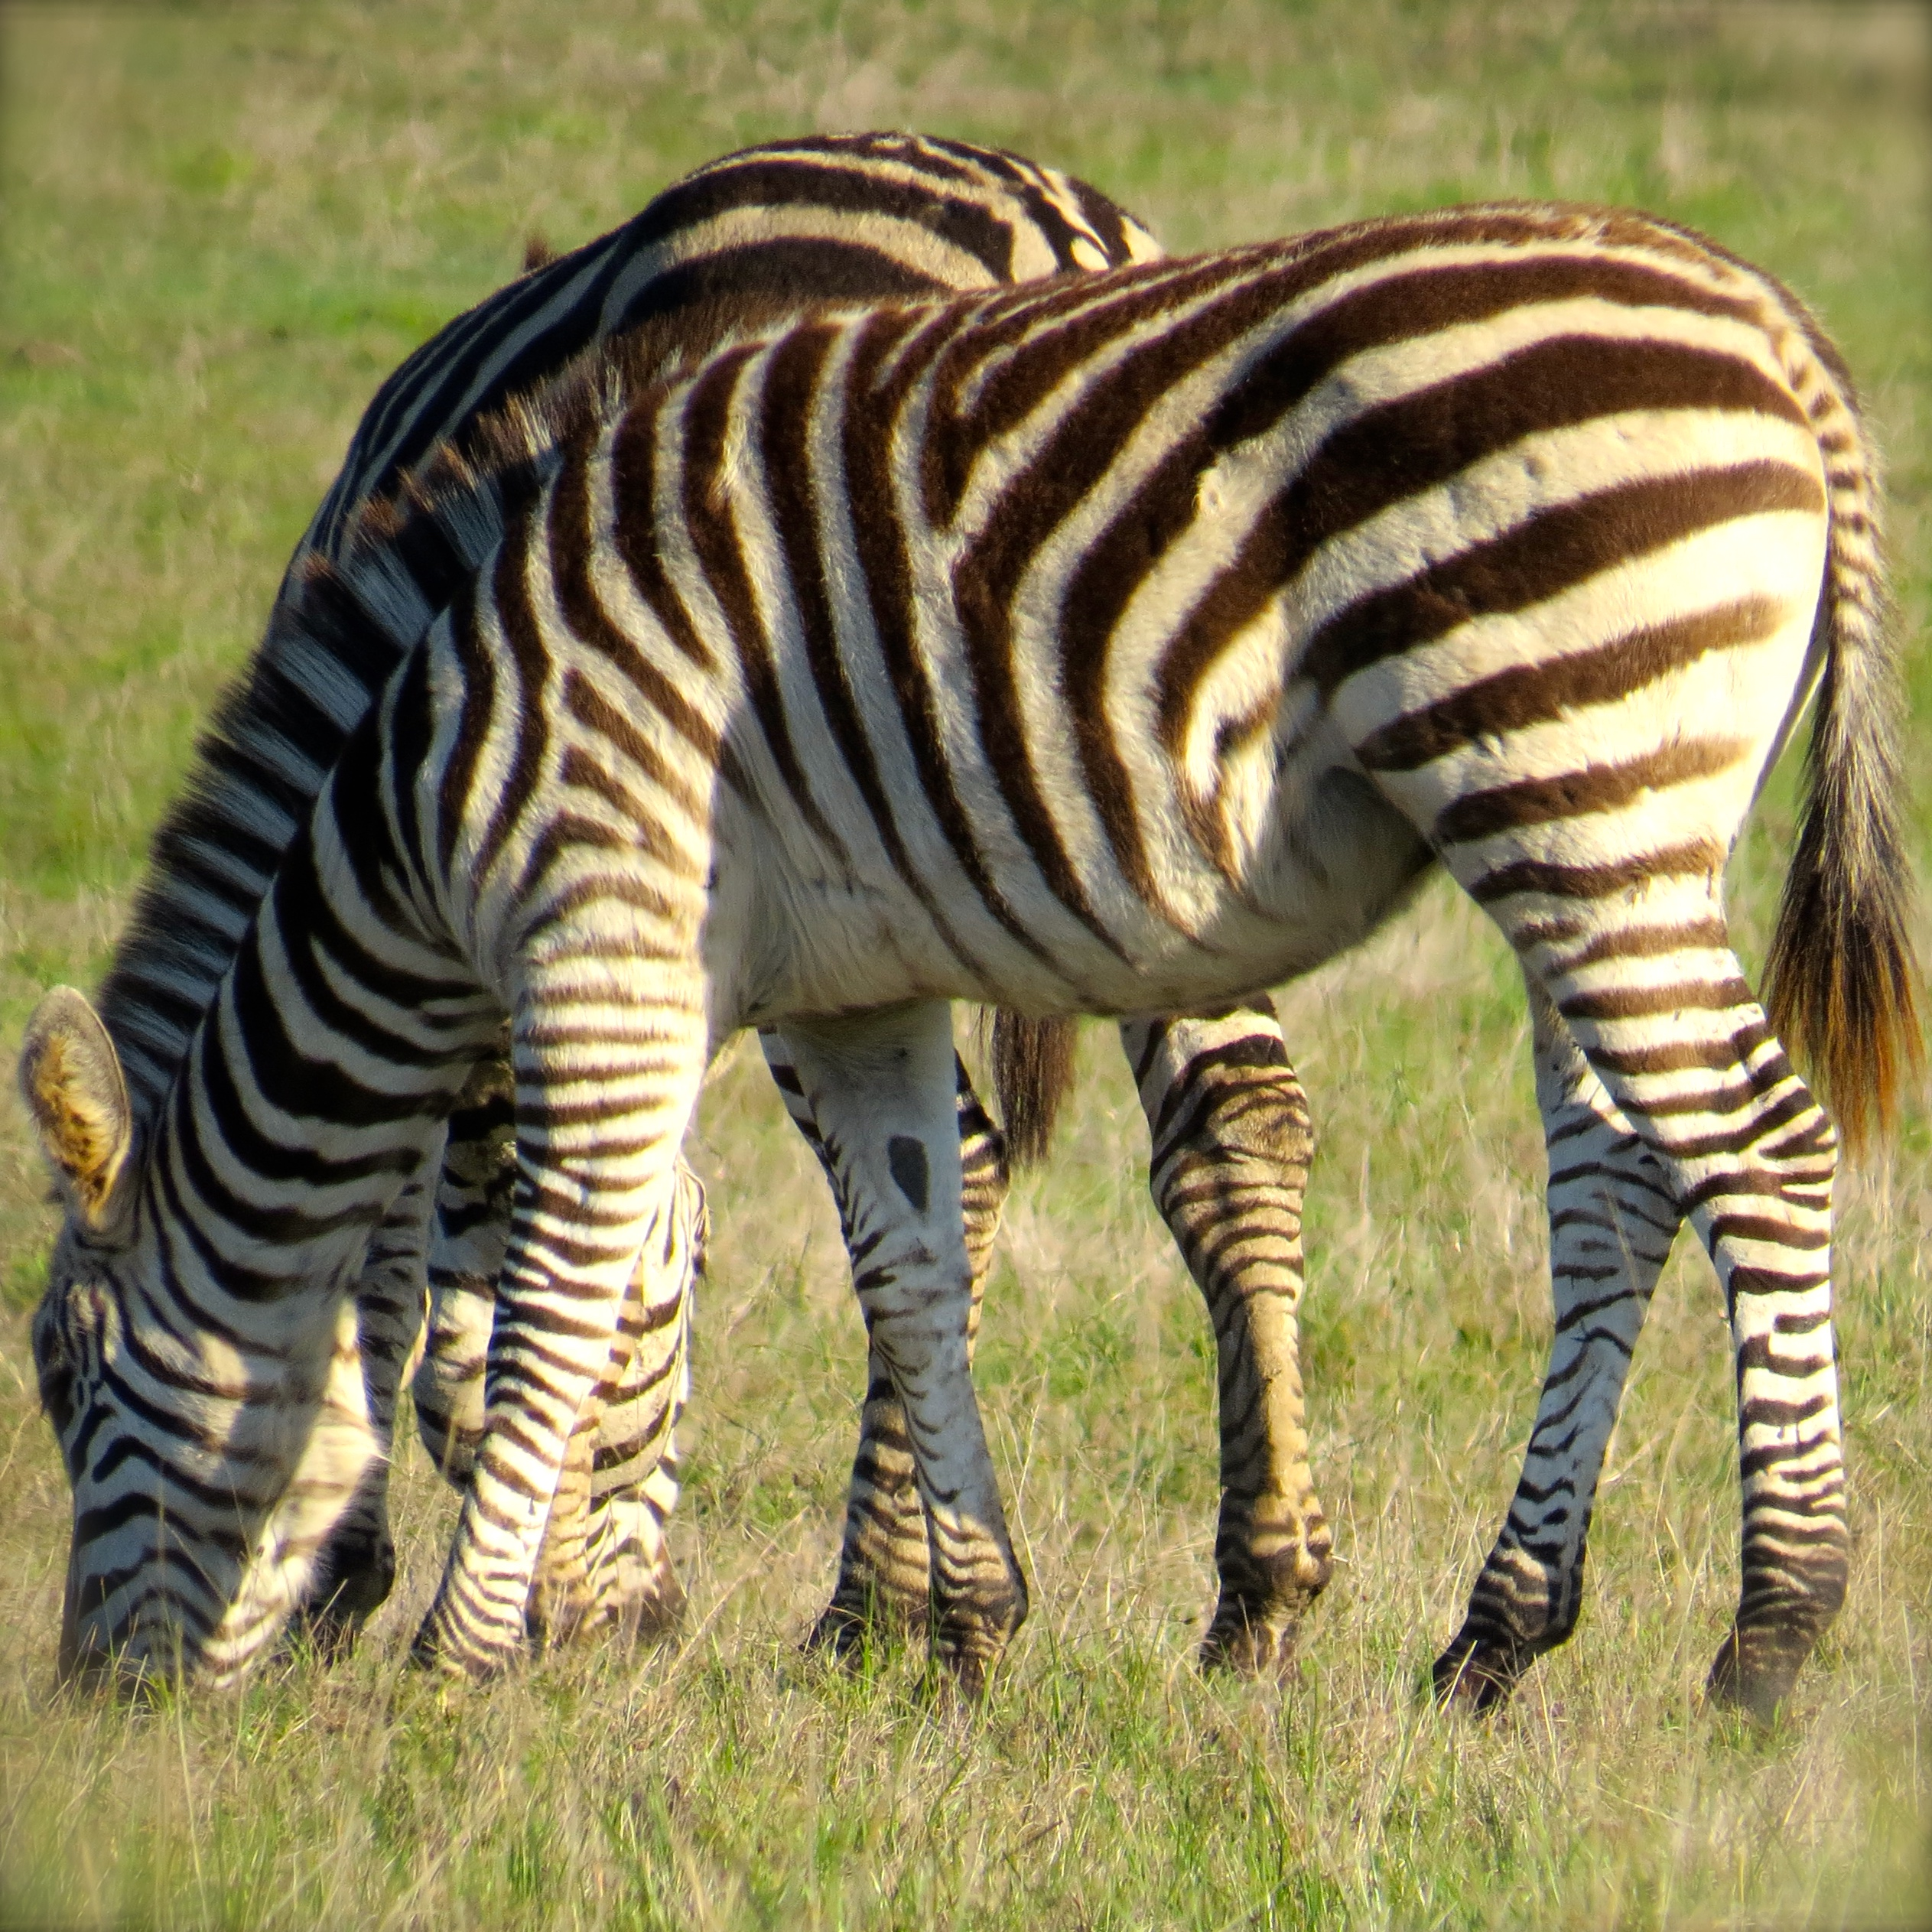 These zebras live and lounge on the Hearst Ranch in San Simeon. I'm thinking they have no worries.